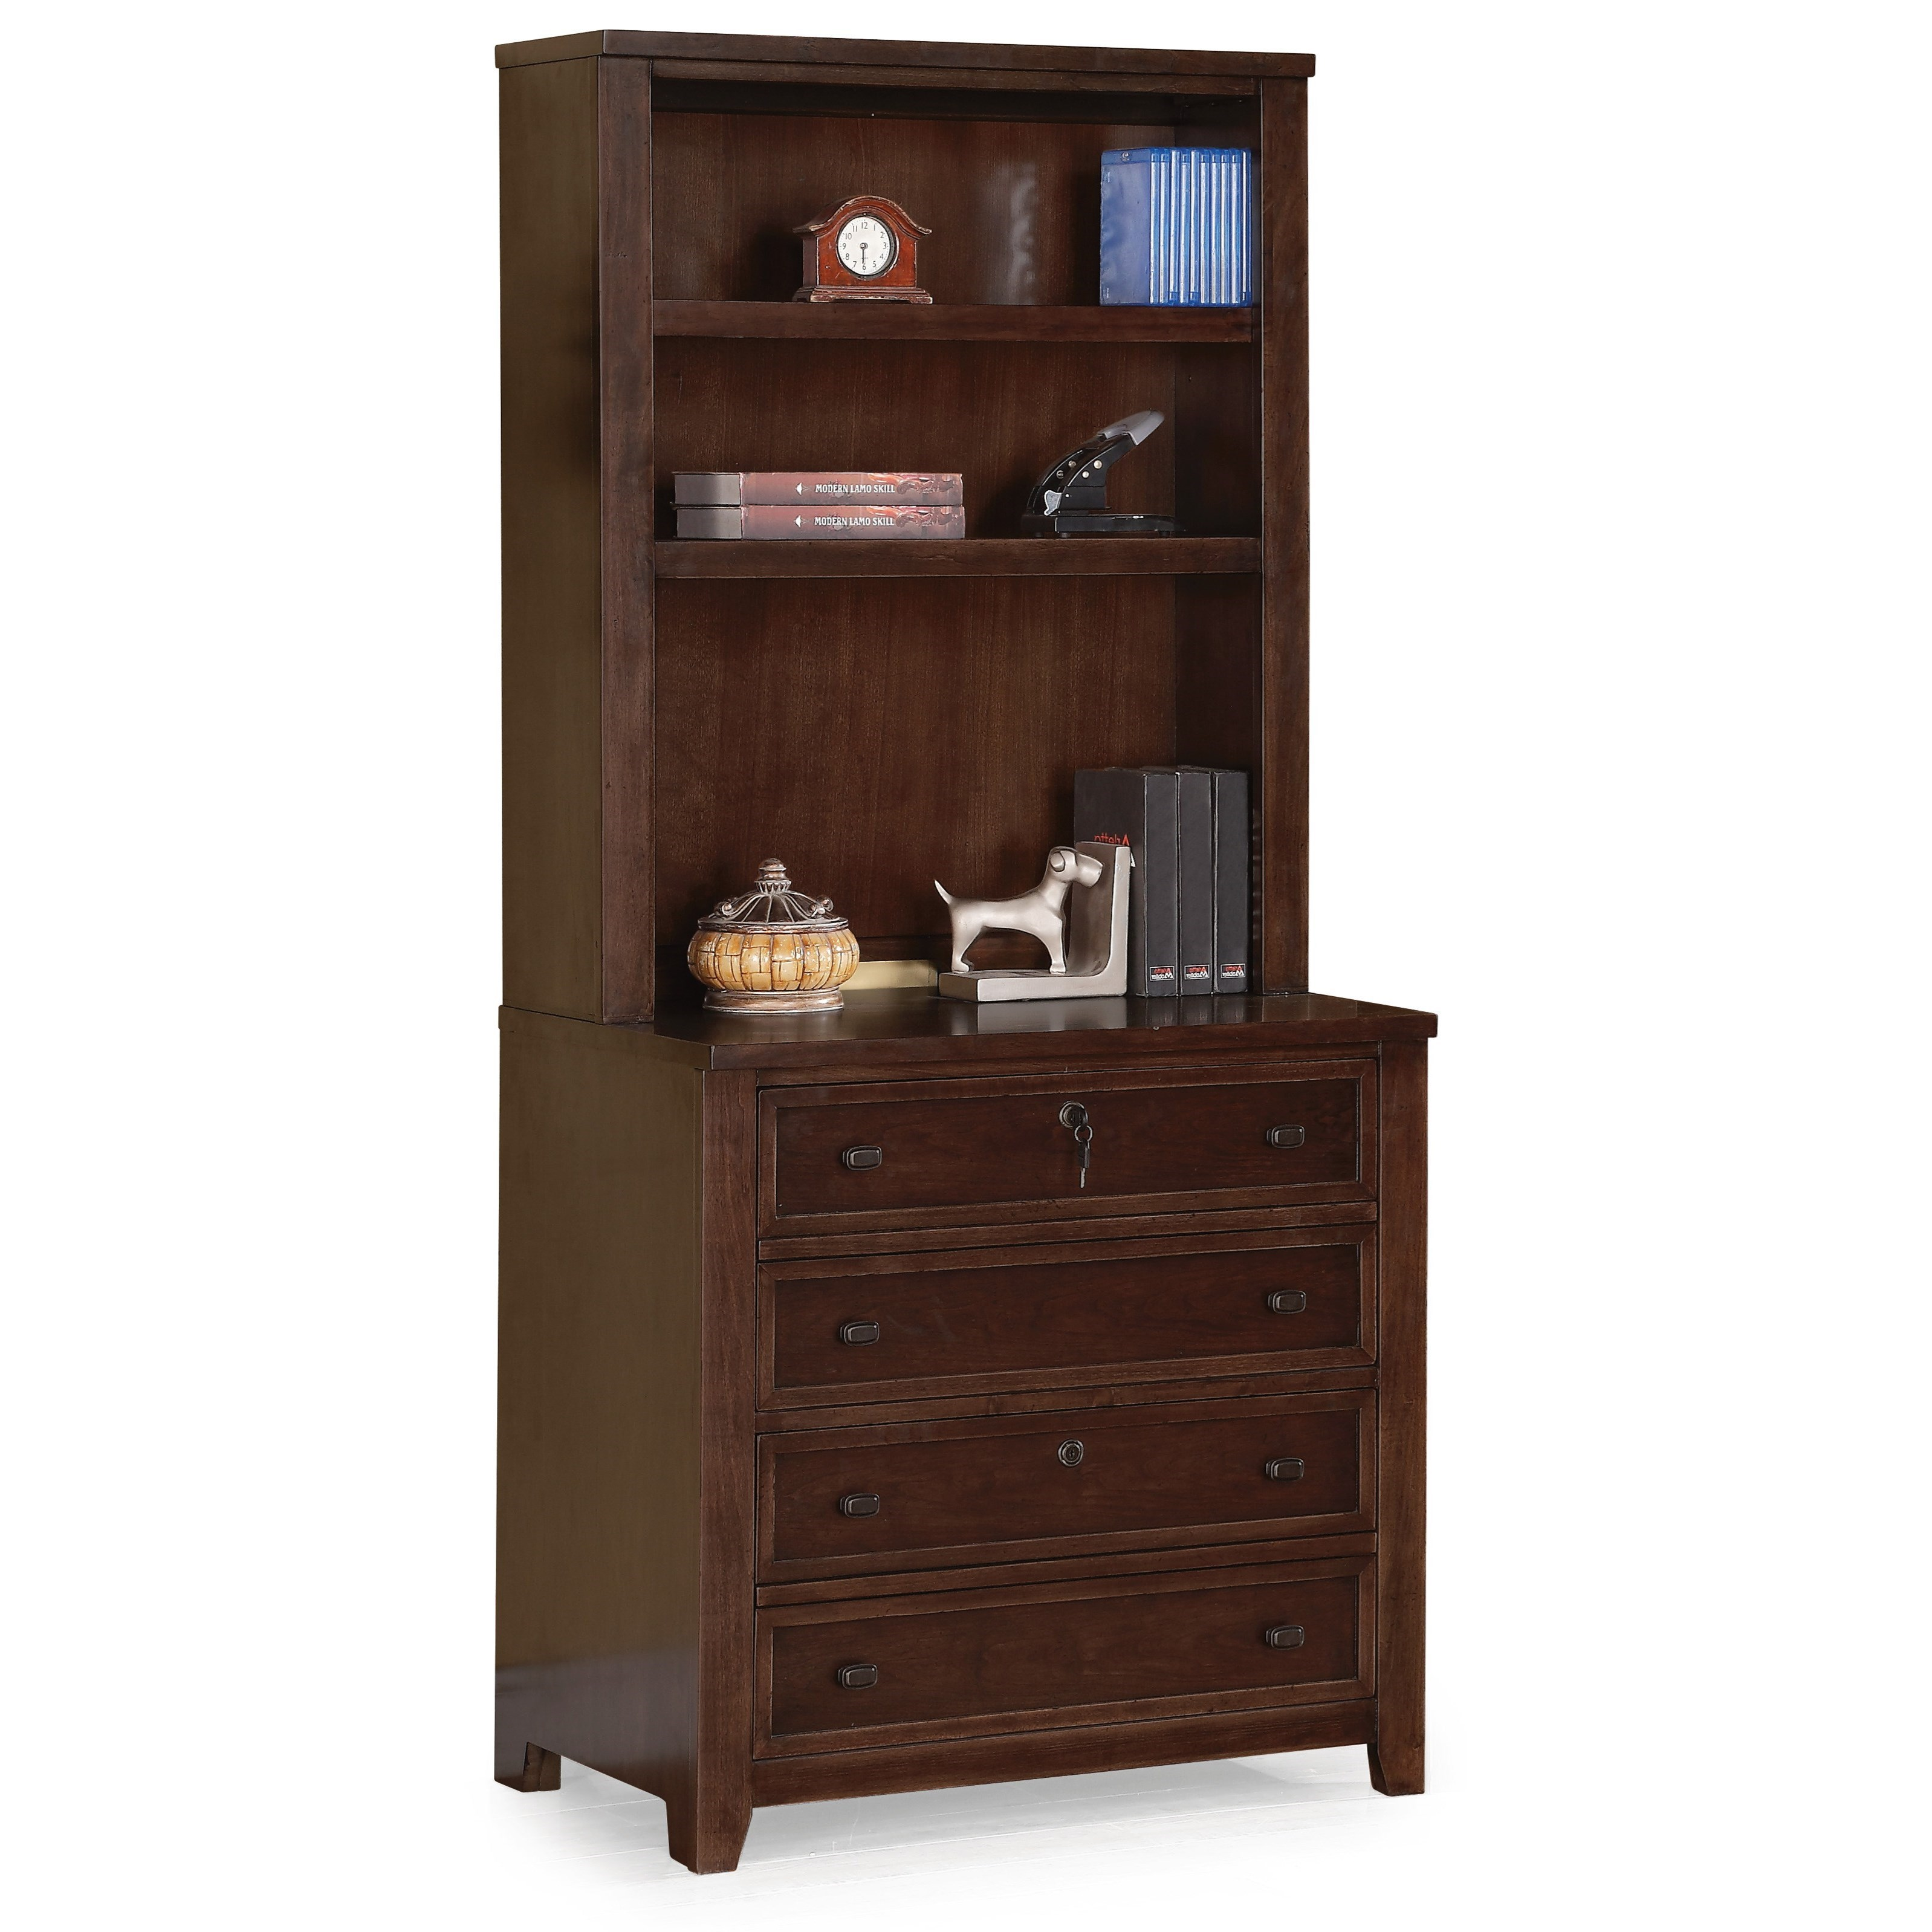 Flexsteel wynwood collection theodore contemporary for Modern home office furniture collections